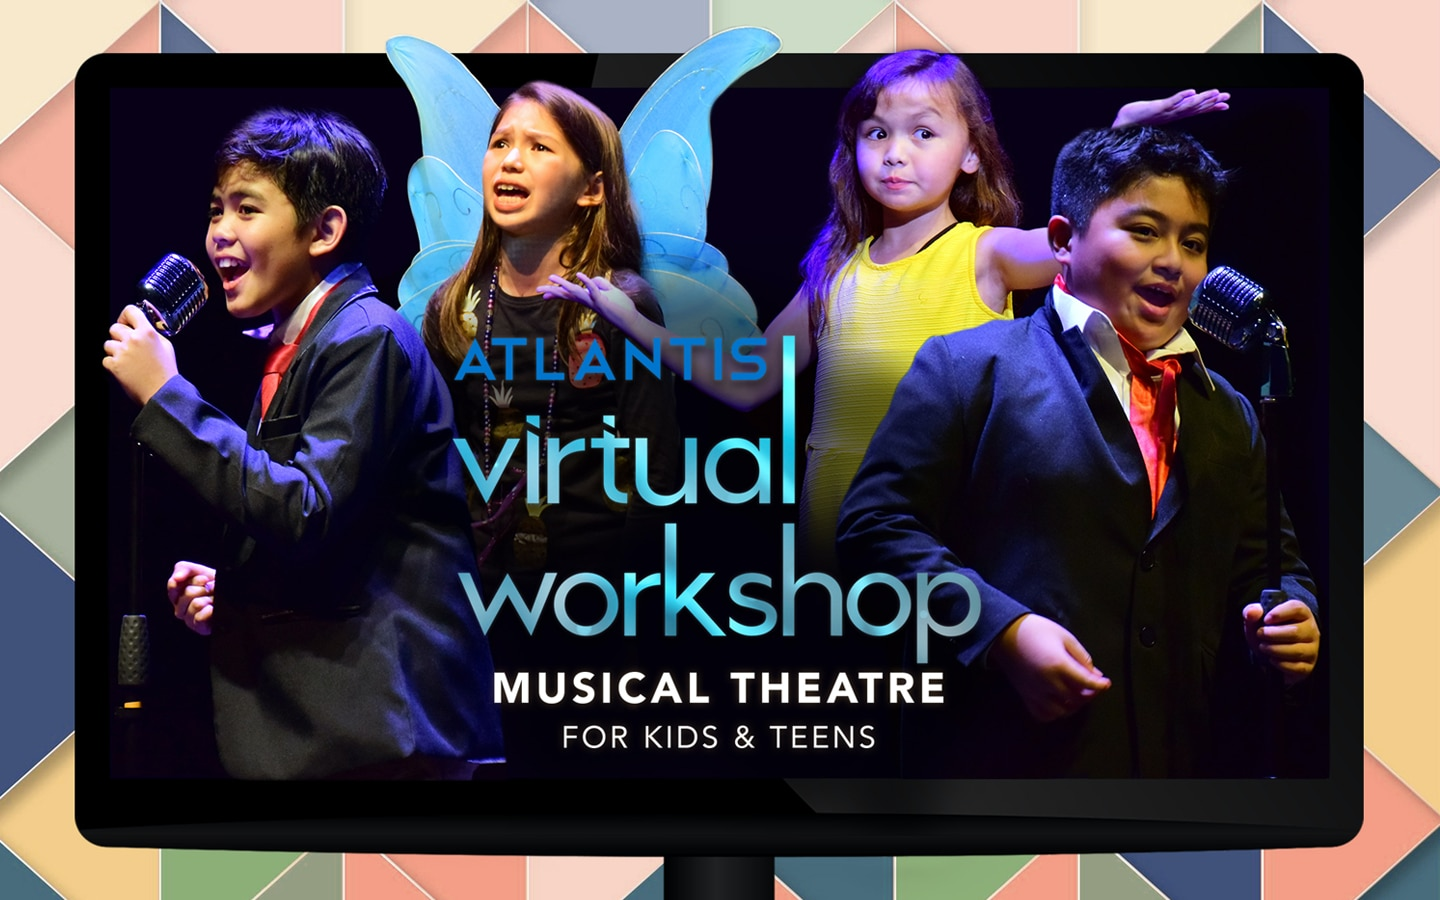 Atlantis Theatrical Opens More Slots For Their Virtual Workshops